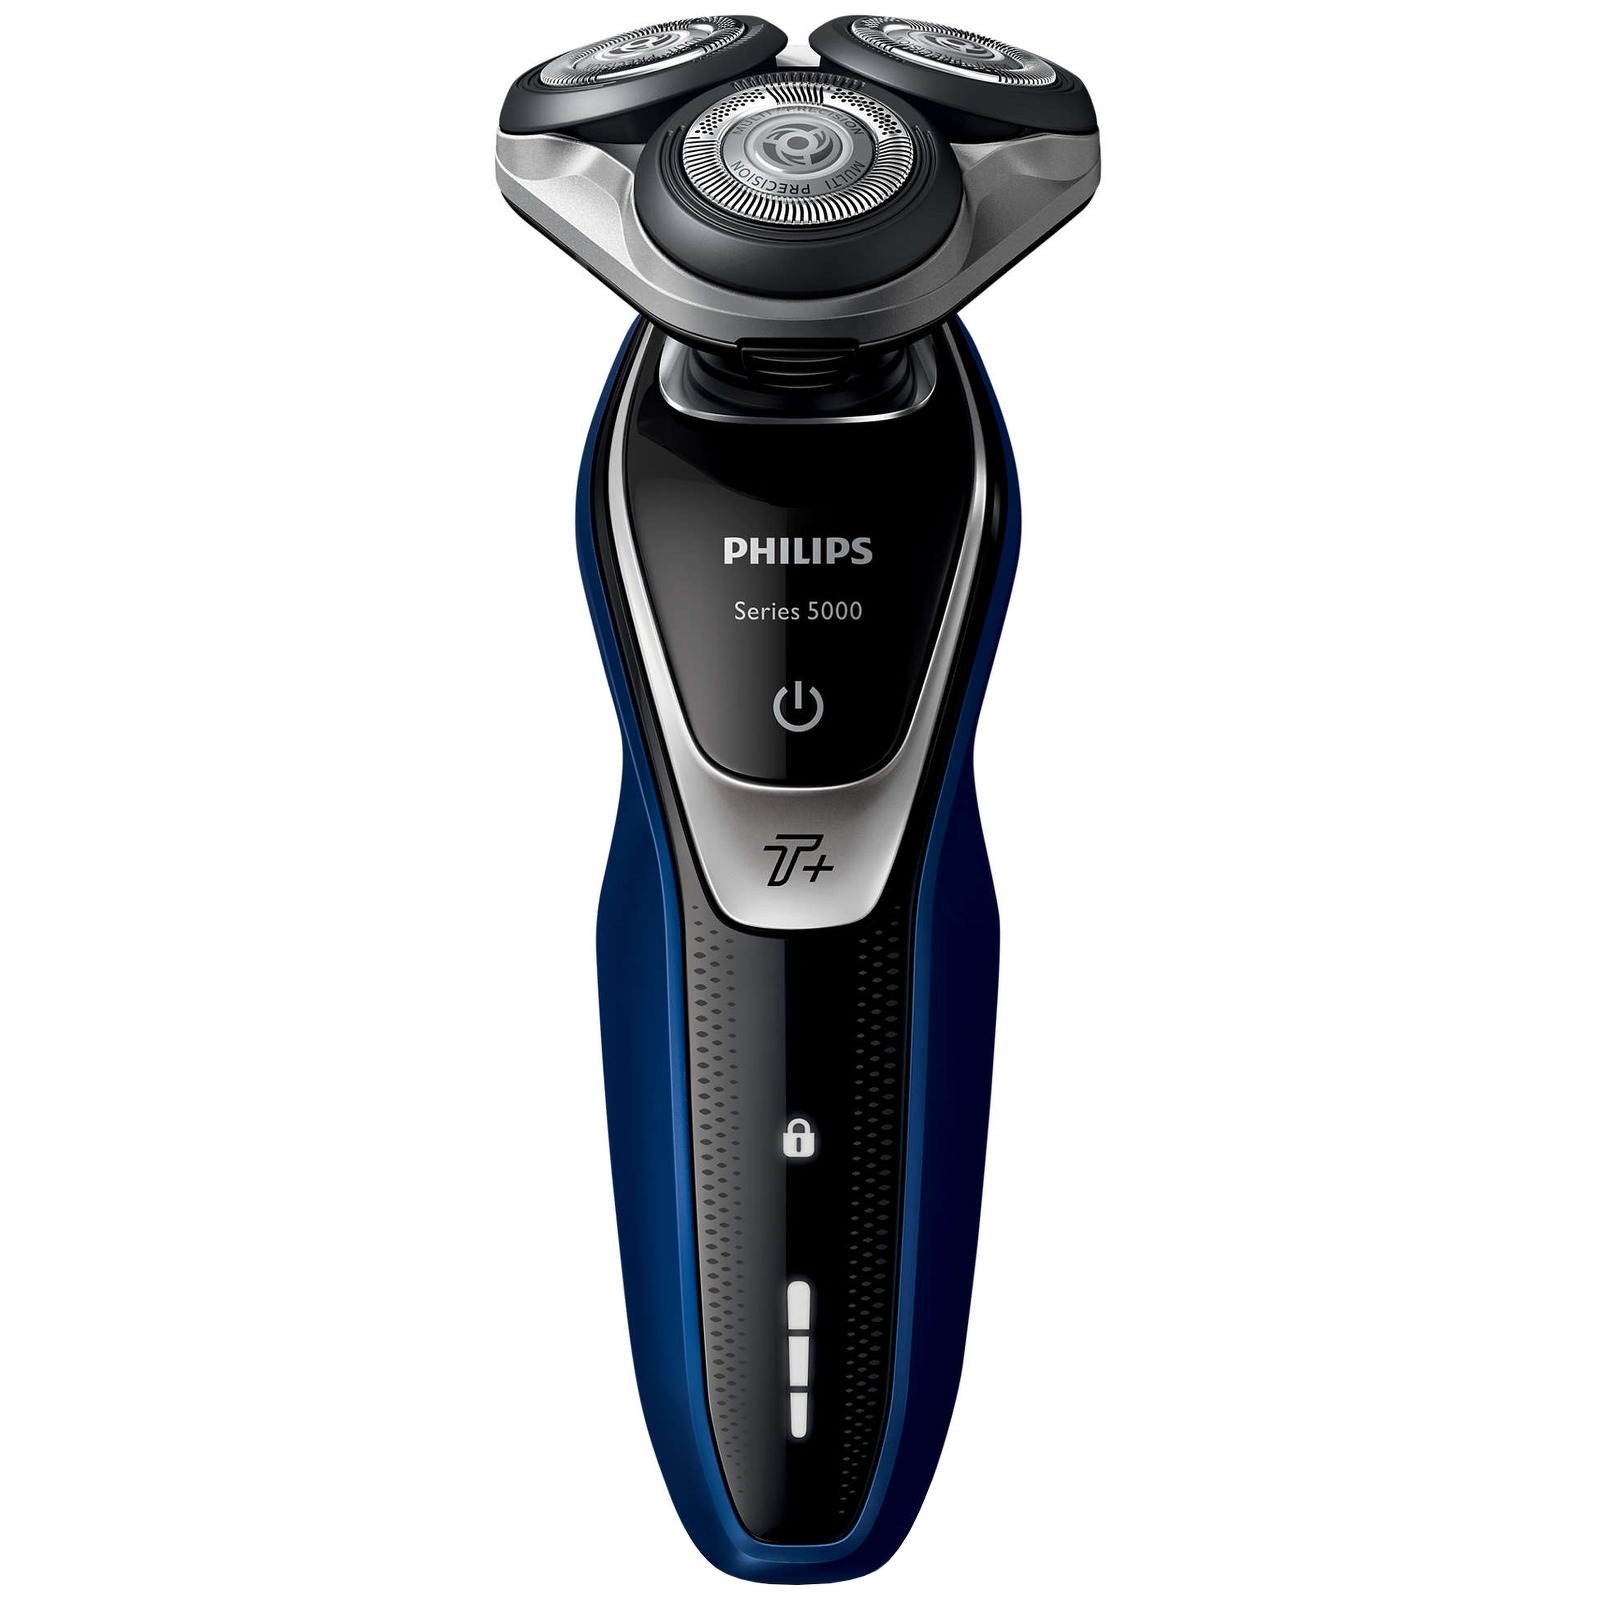 Philips Face Shavers Shaver Series 5000 Wet & Dry Electric Shaver With SmartClean S5572/10